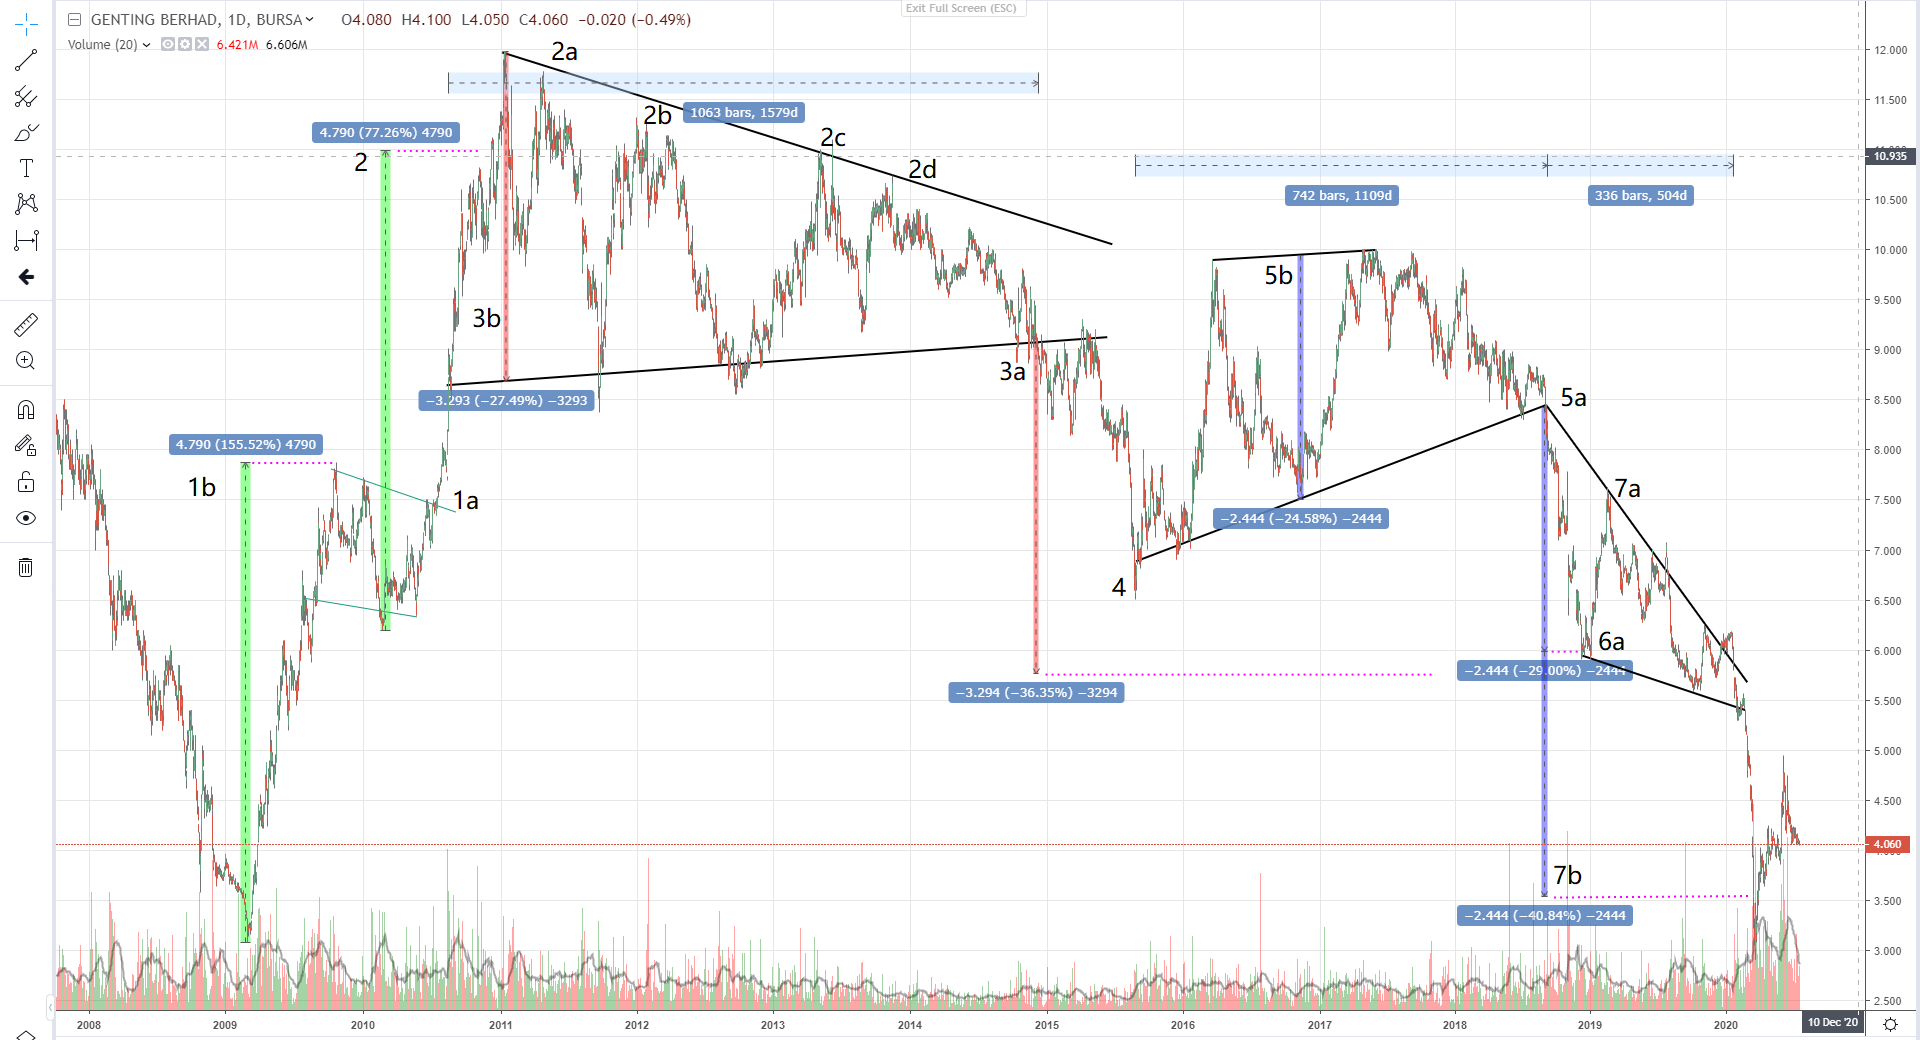 GENTING (3182) - Technical Analysis